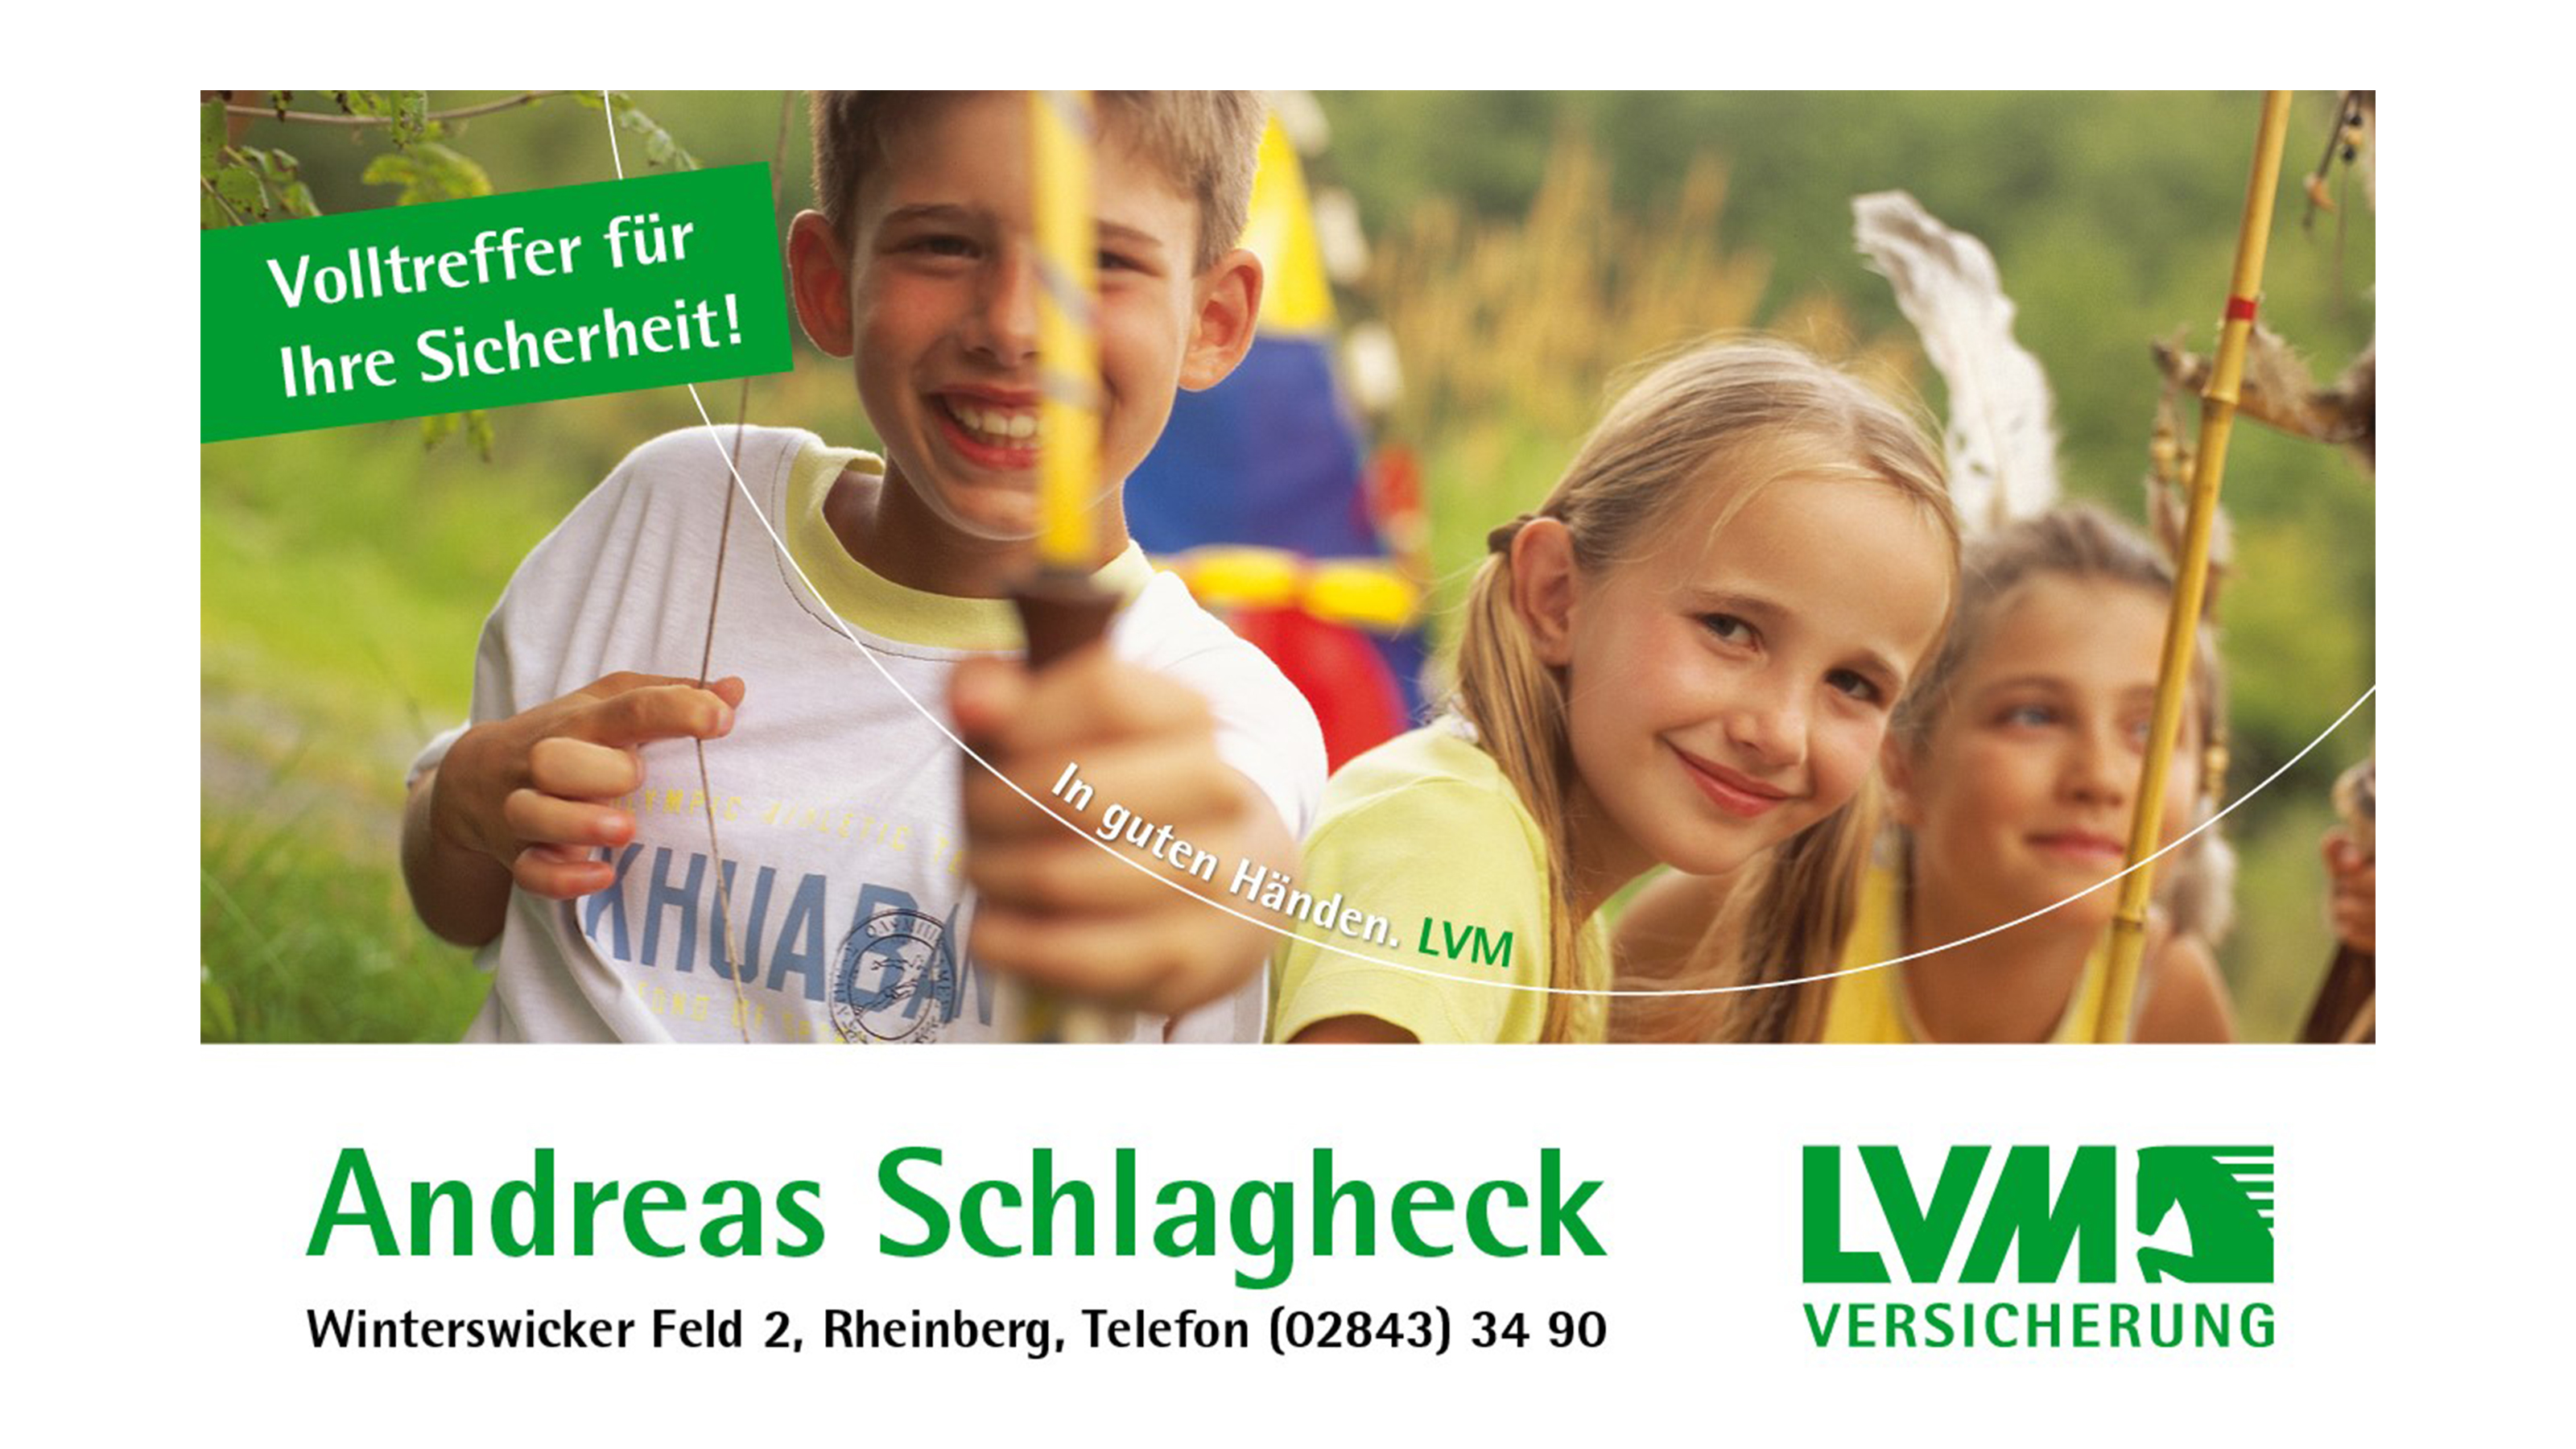 LVM – Andreas Schlagheck